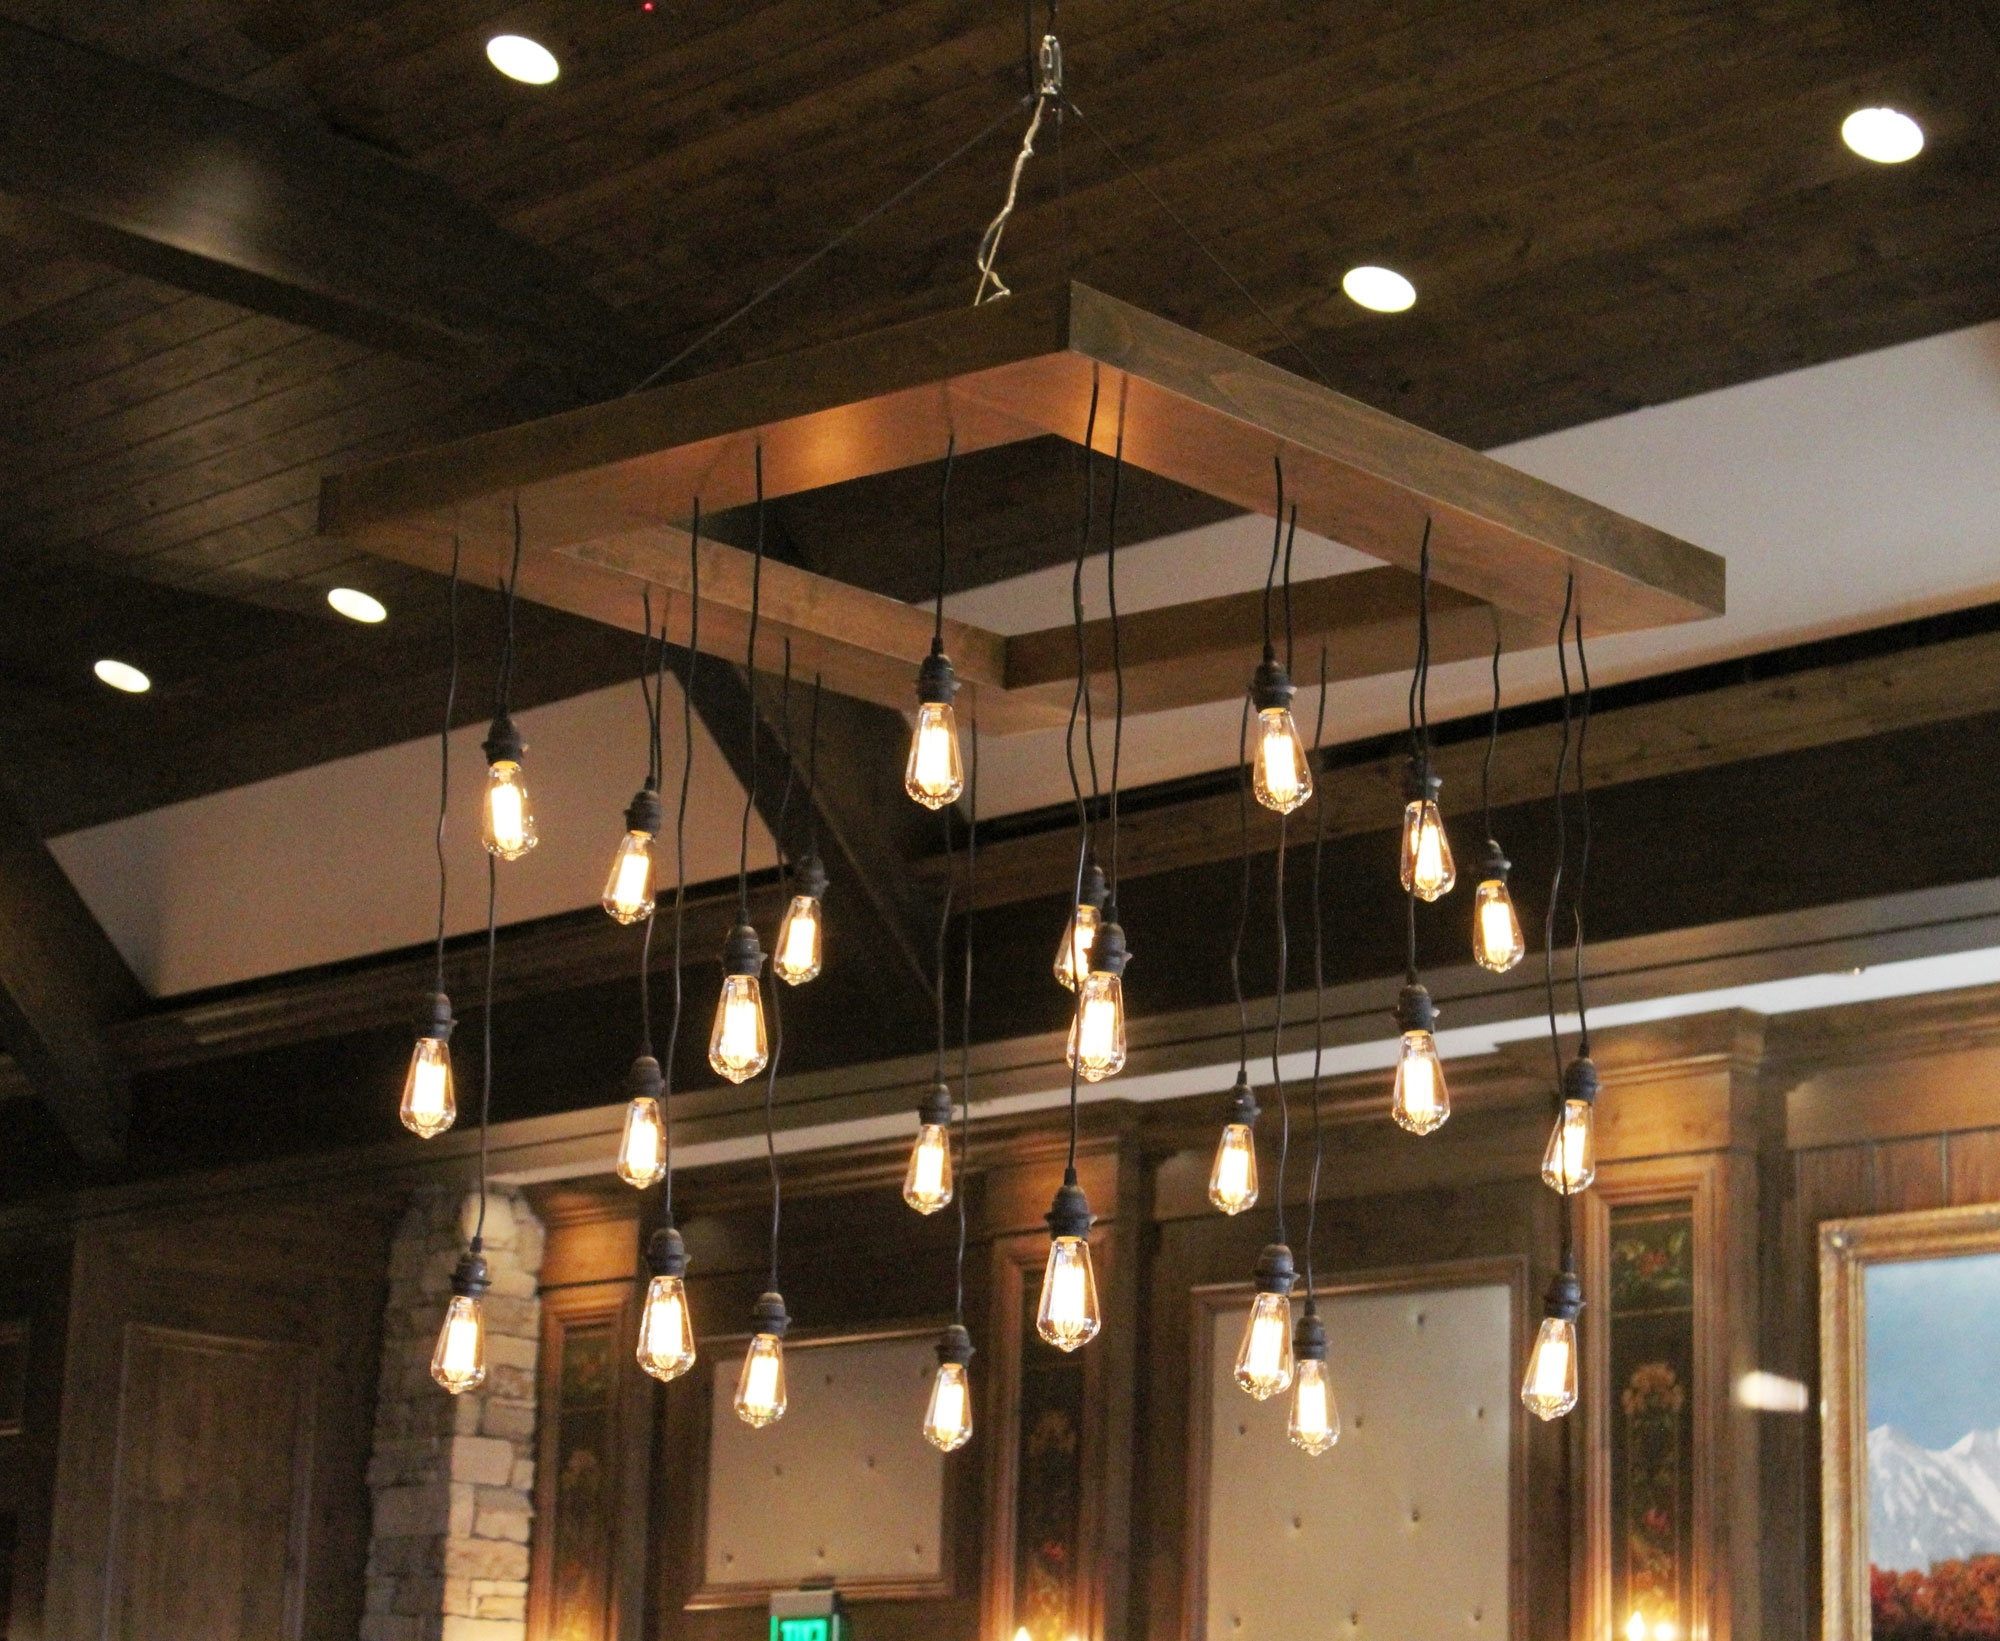 Chandelier For Restaurant With Regard To Popular Bulb Chandelier (View 18 of 20)